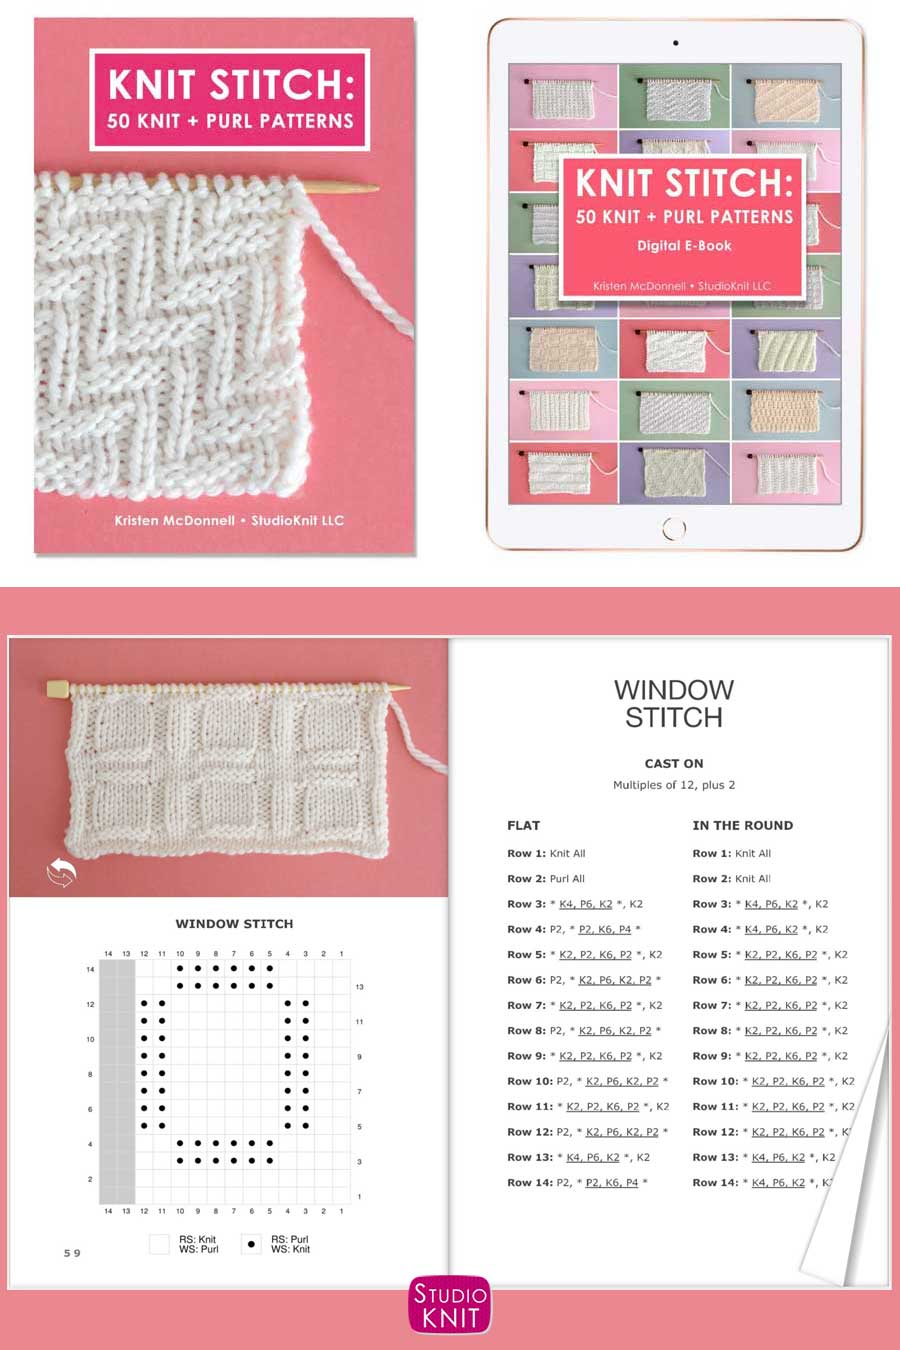 Knit Stitch Pattern Book with Window Stitch by Studio Knit